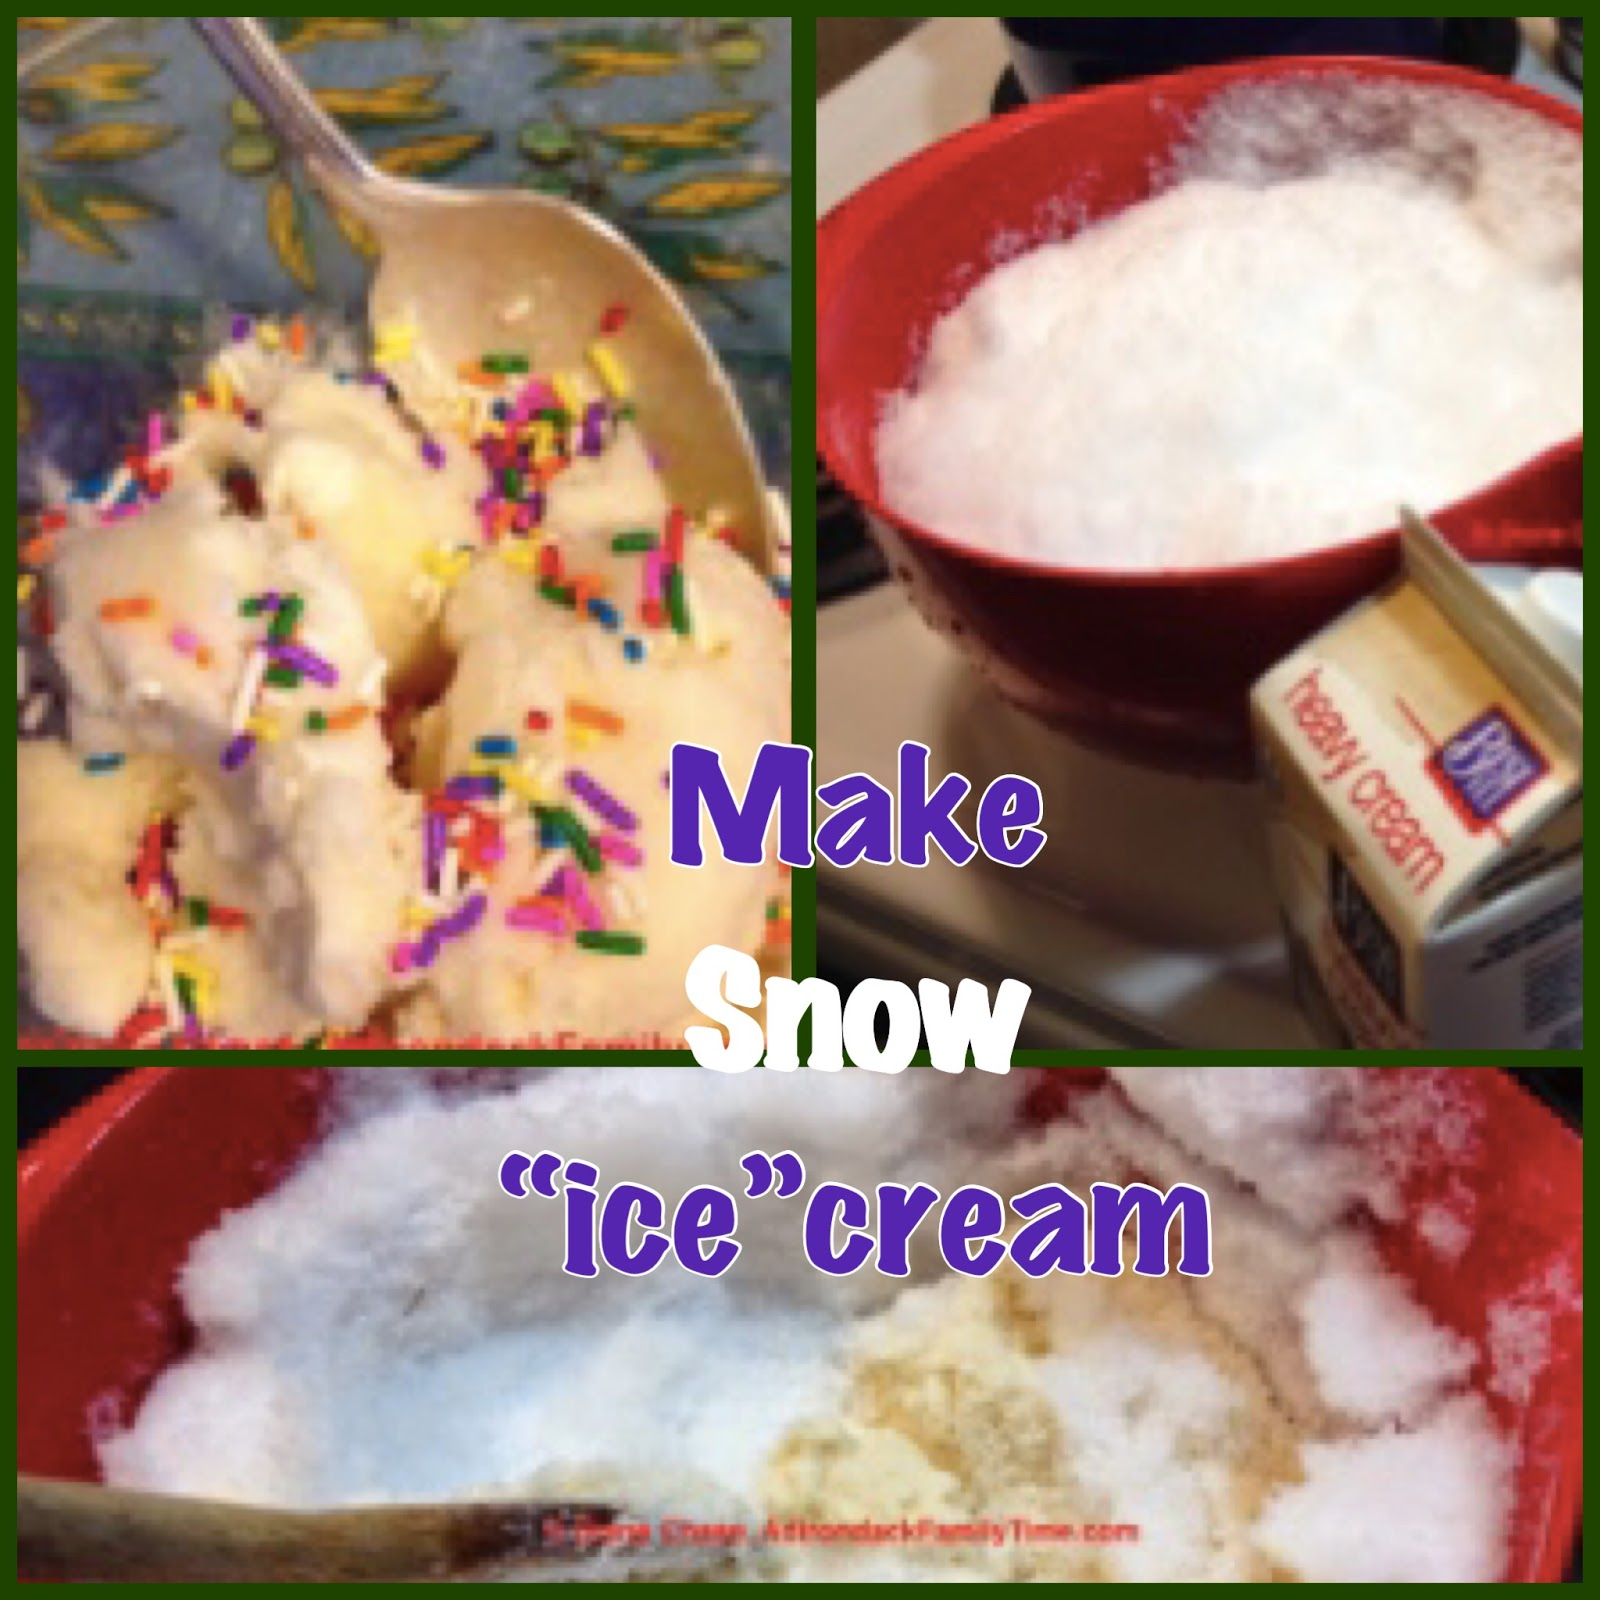 Recipe making snow cream instead of ice cream using fresh clean recipe making snow cream instead of ice cream using fresh clean snow to make ice cream ccuart Gallery